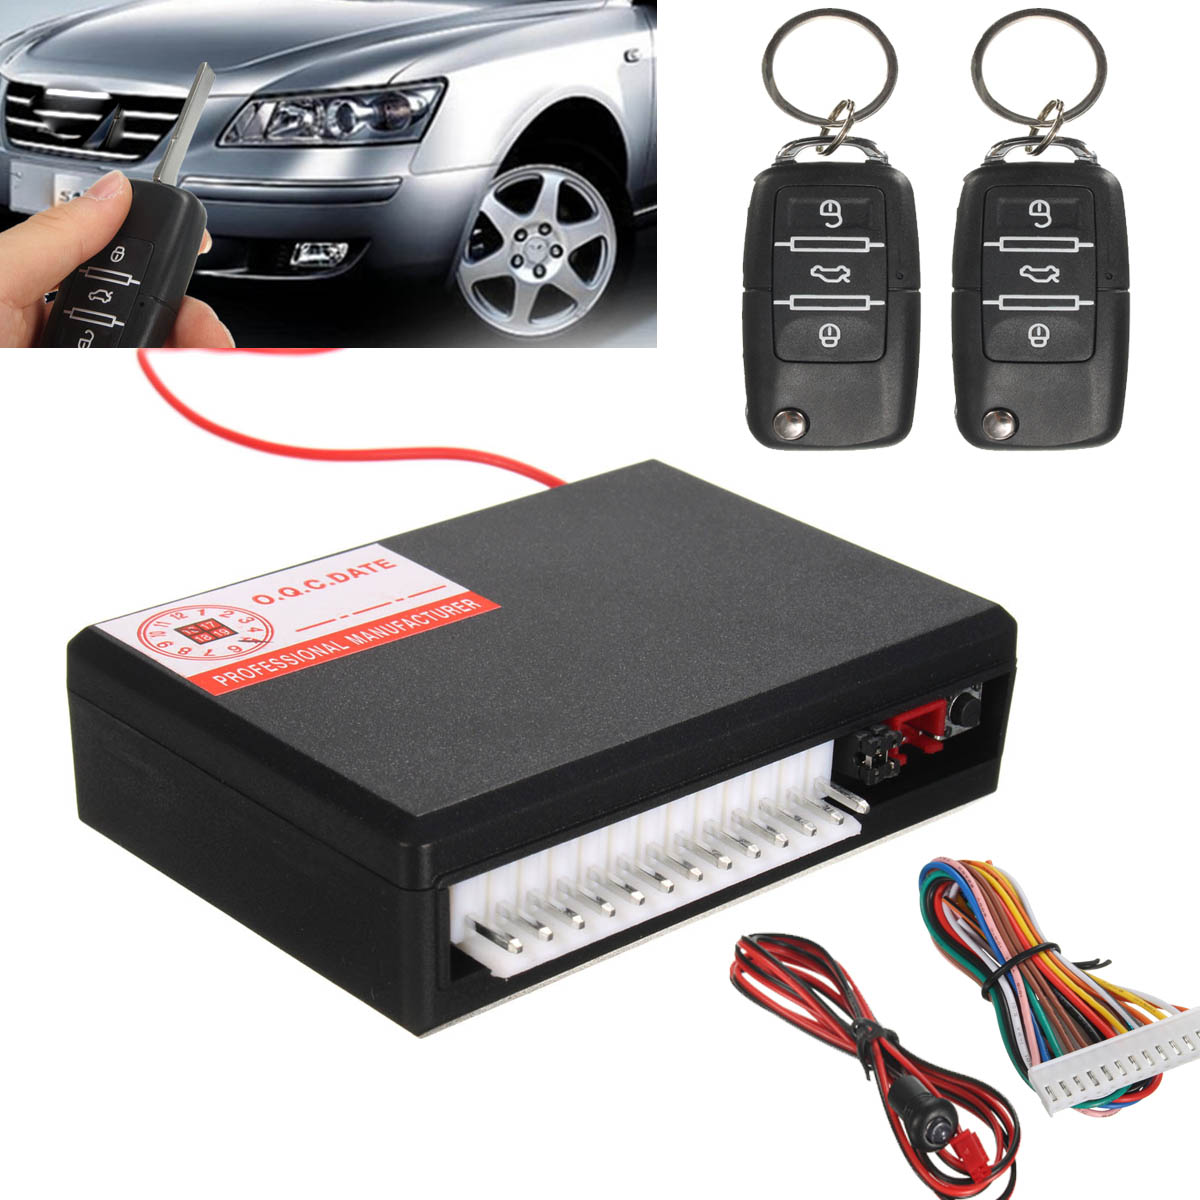 2016 new universal car vehicle remote control central kit